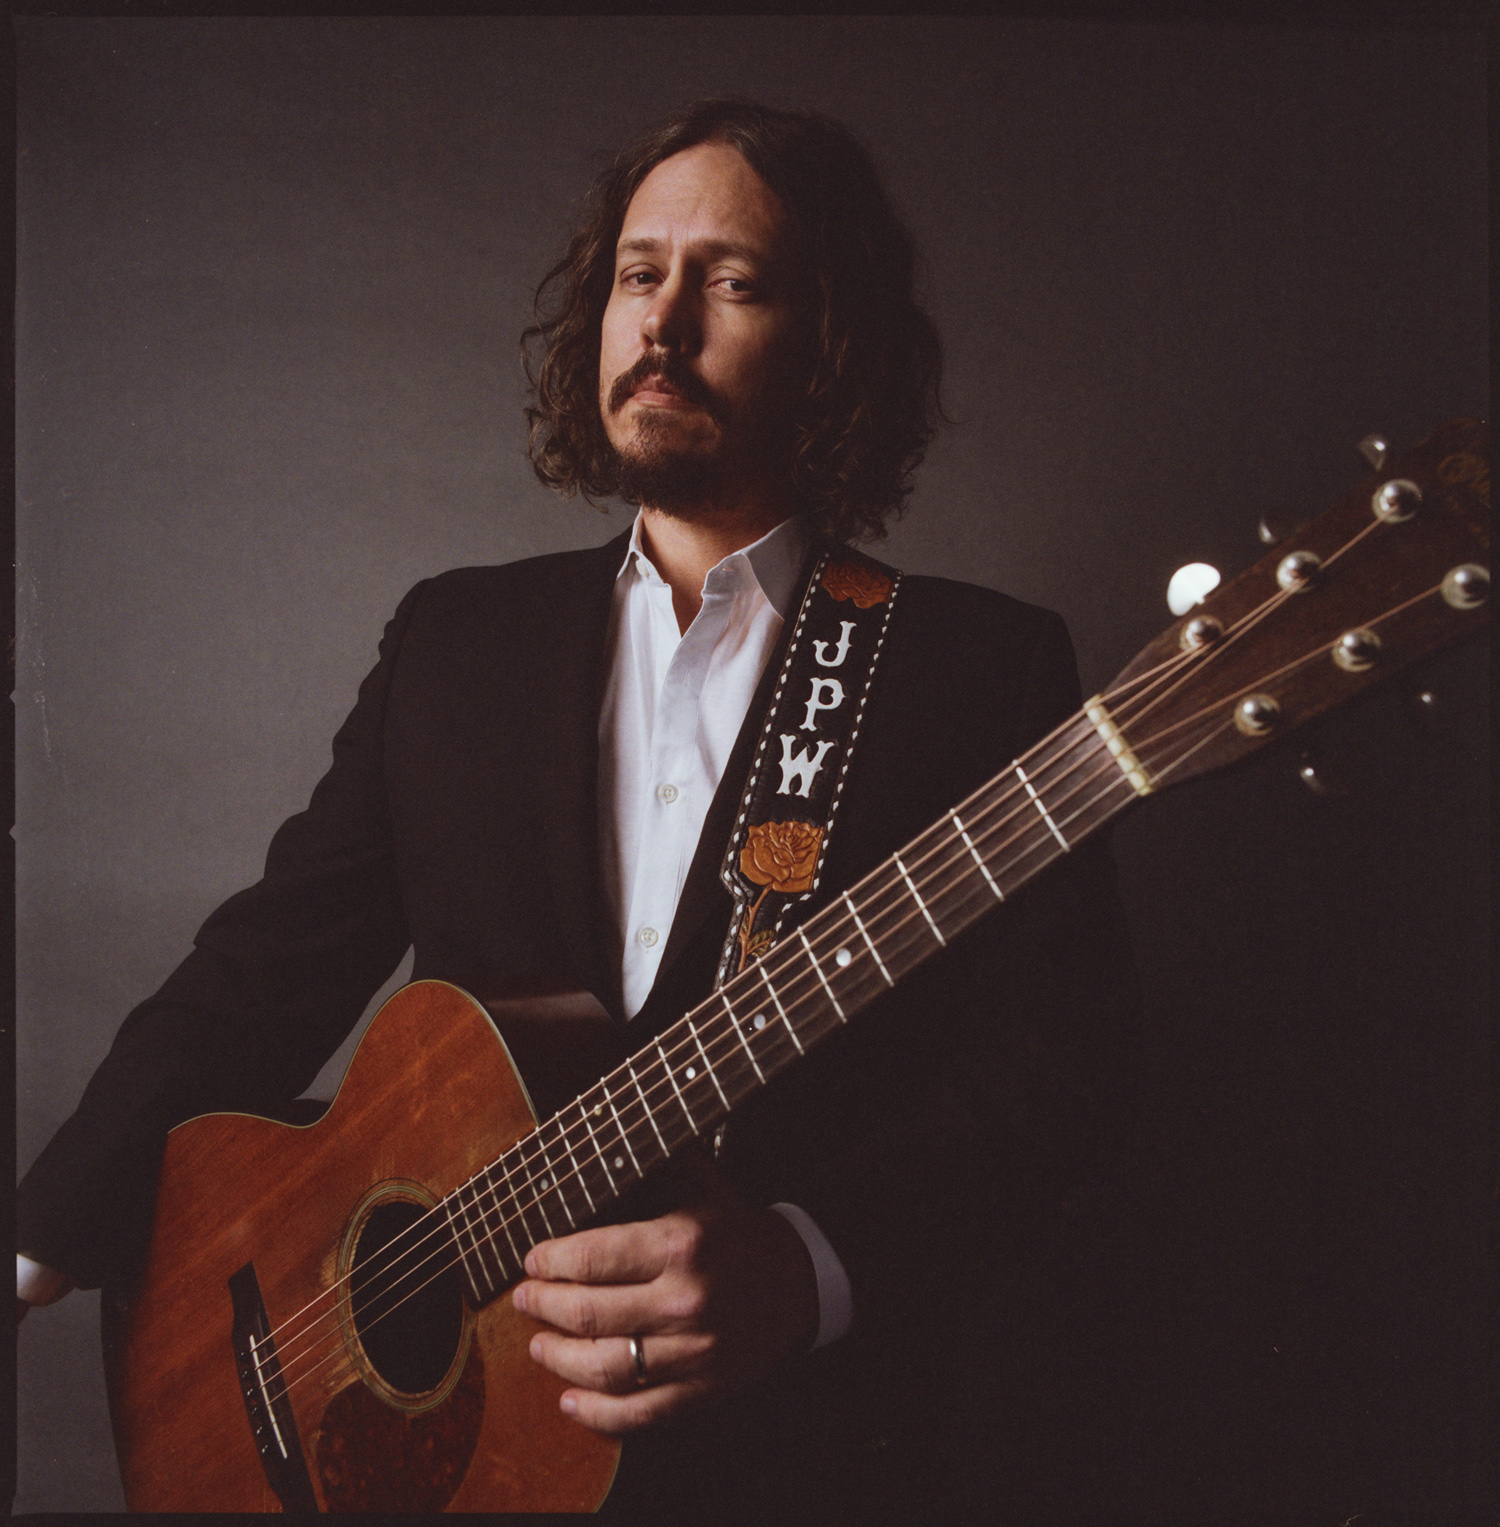 John Paul White to play the Ogden Theater later this month